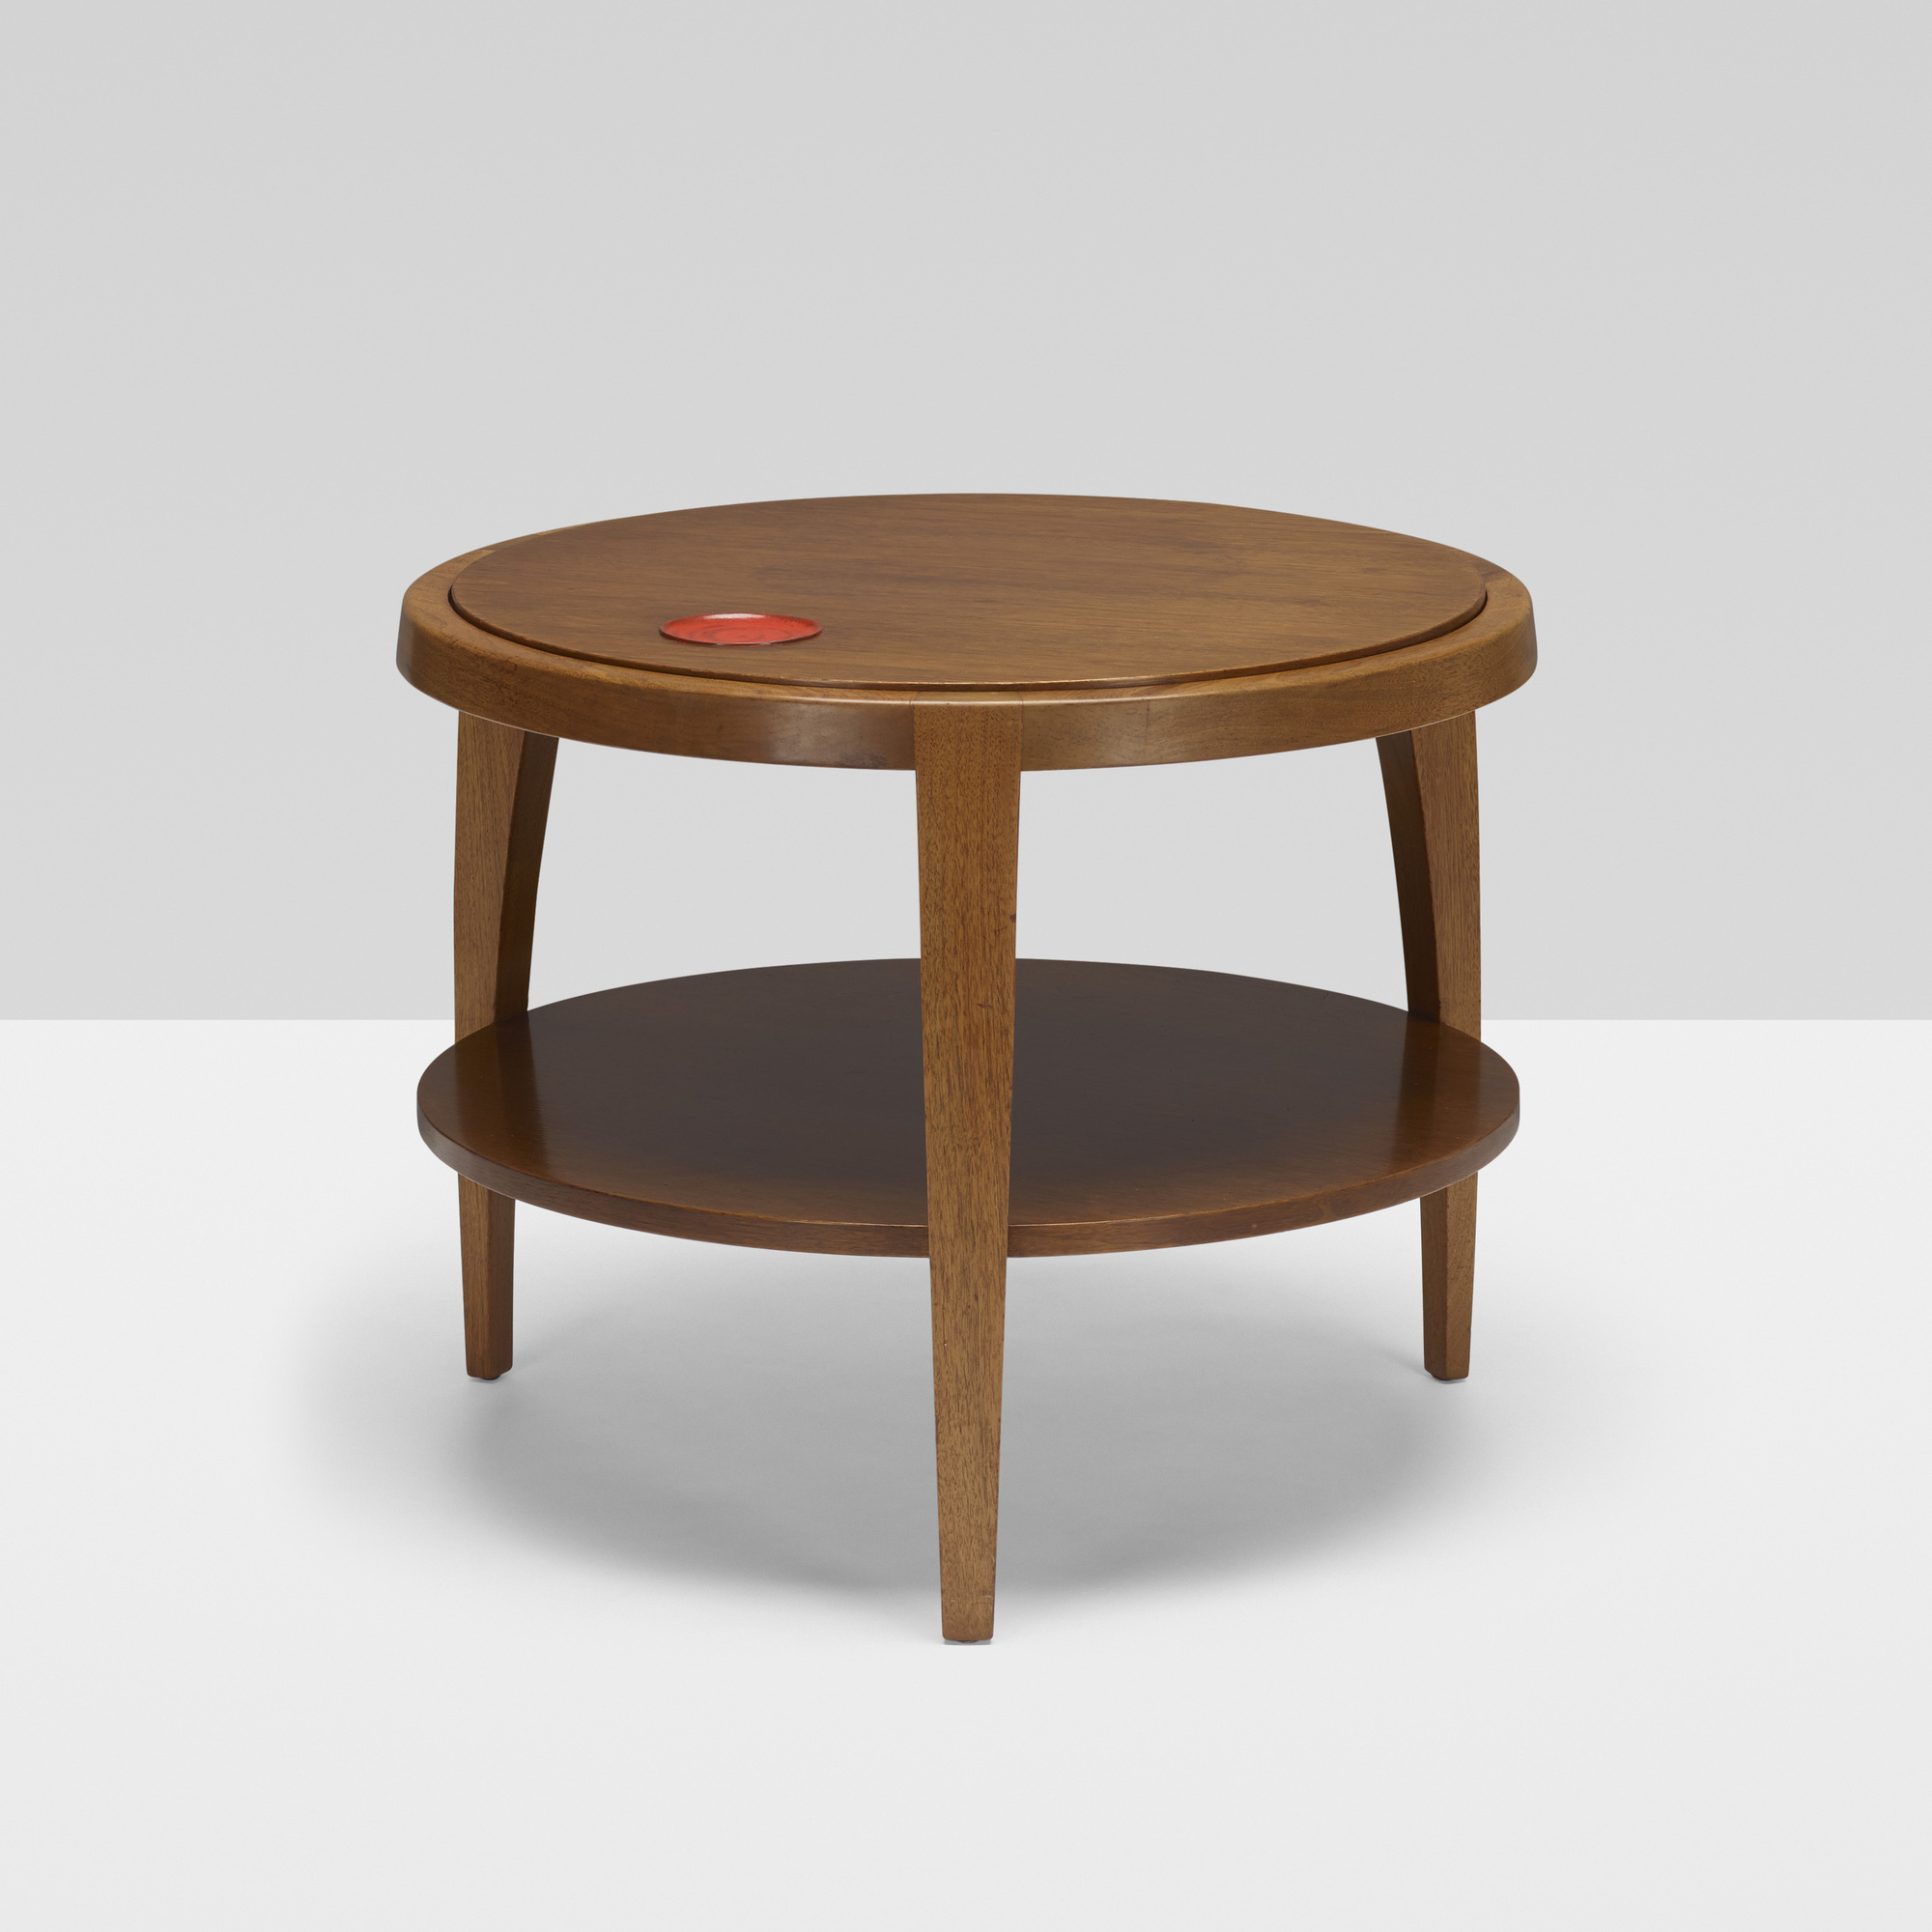 322: Edward Wormley / occasional table, model 319 (1 of 3)